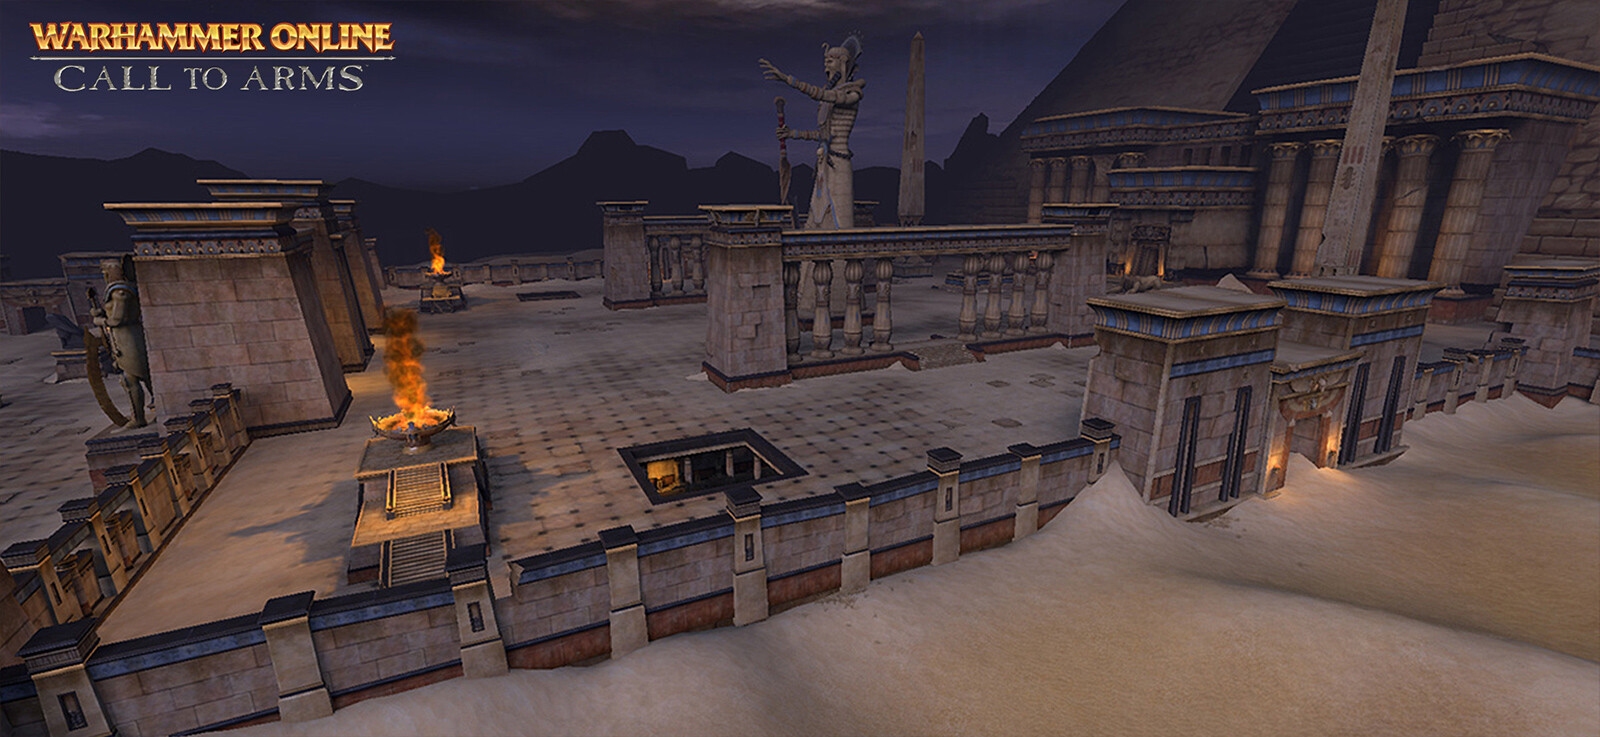 Main Causeway Area - Statues and Main Pyramid created by fellow artist. Responsible for a majority of the remaining assets in scene as well as layout and design of area.